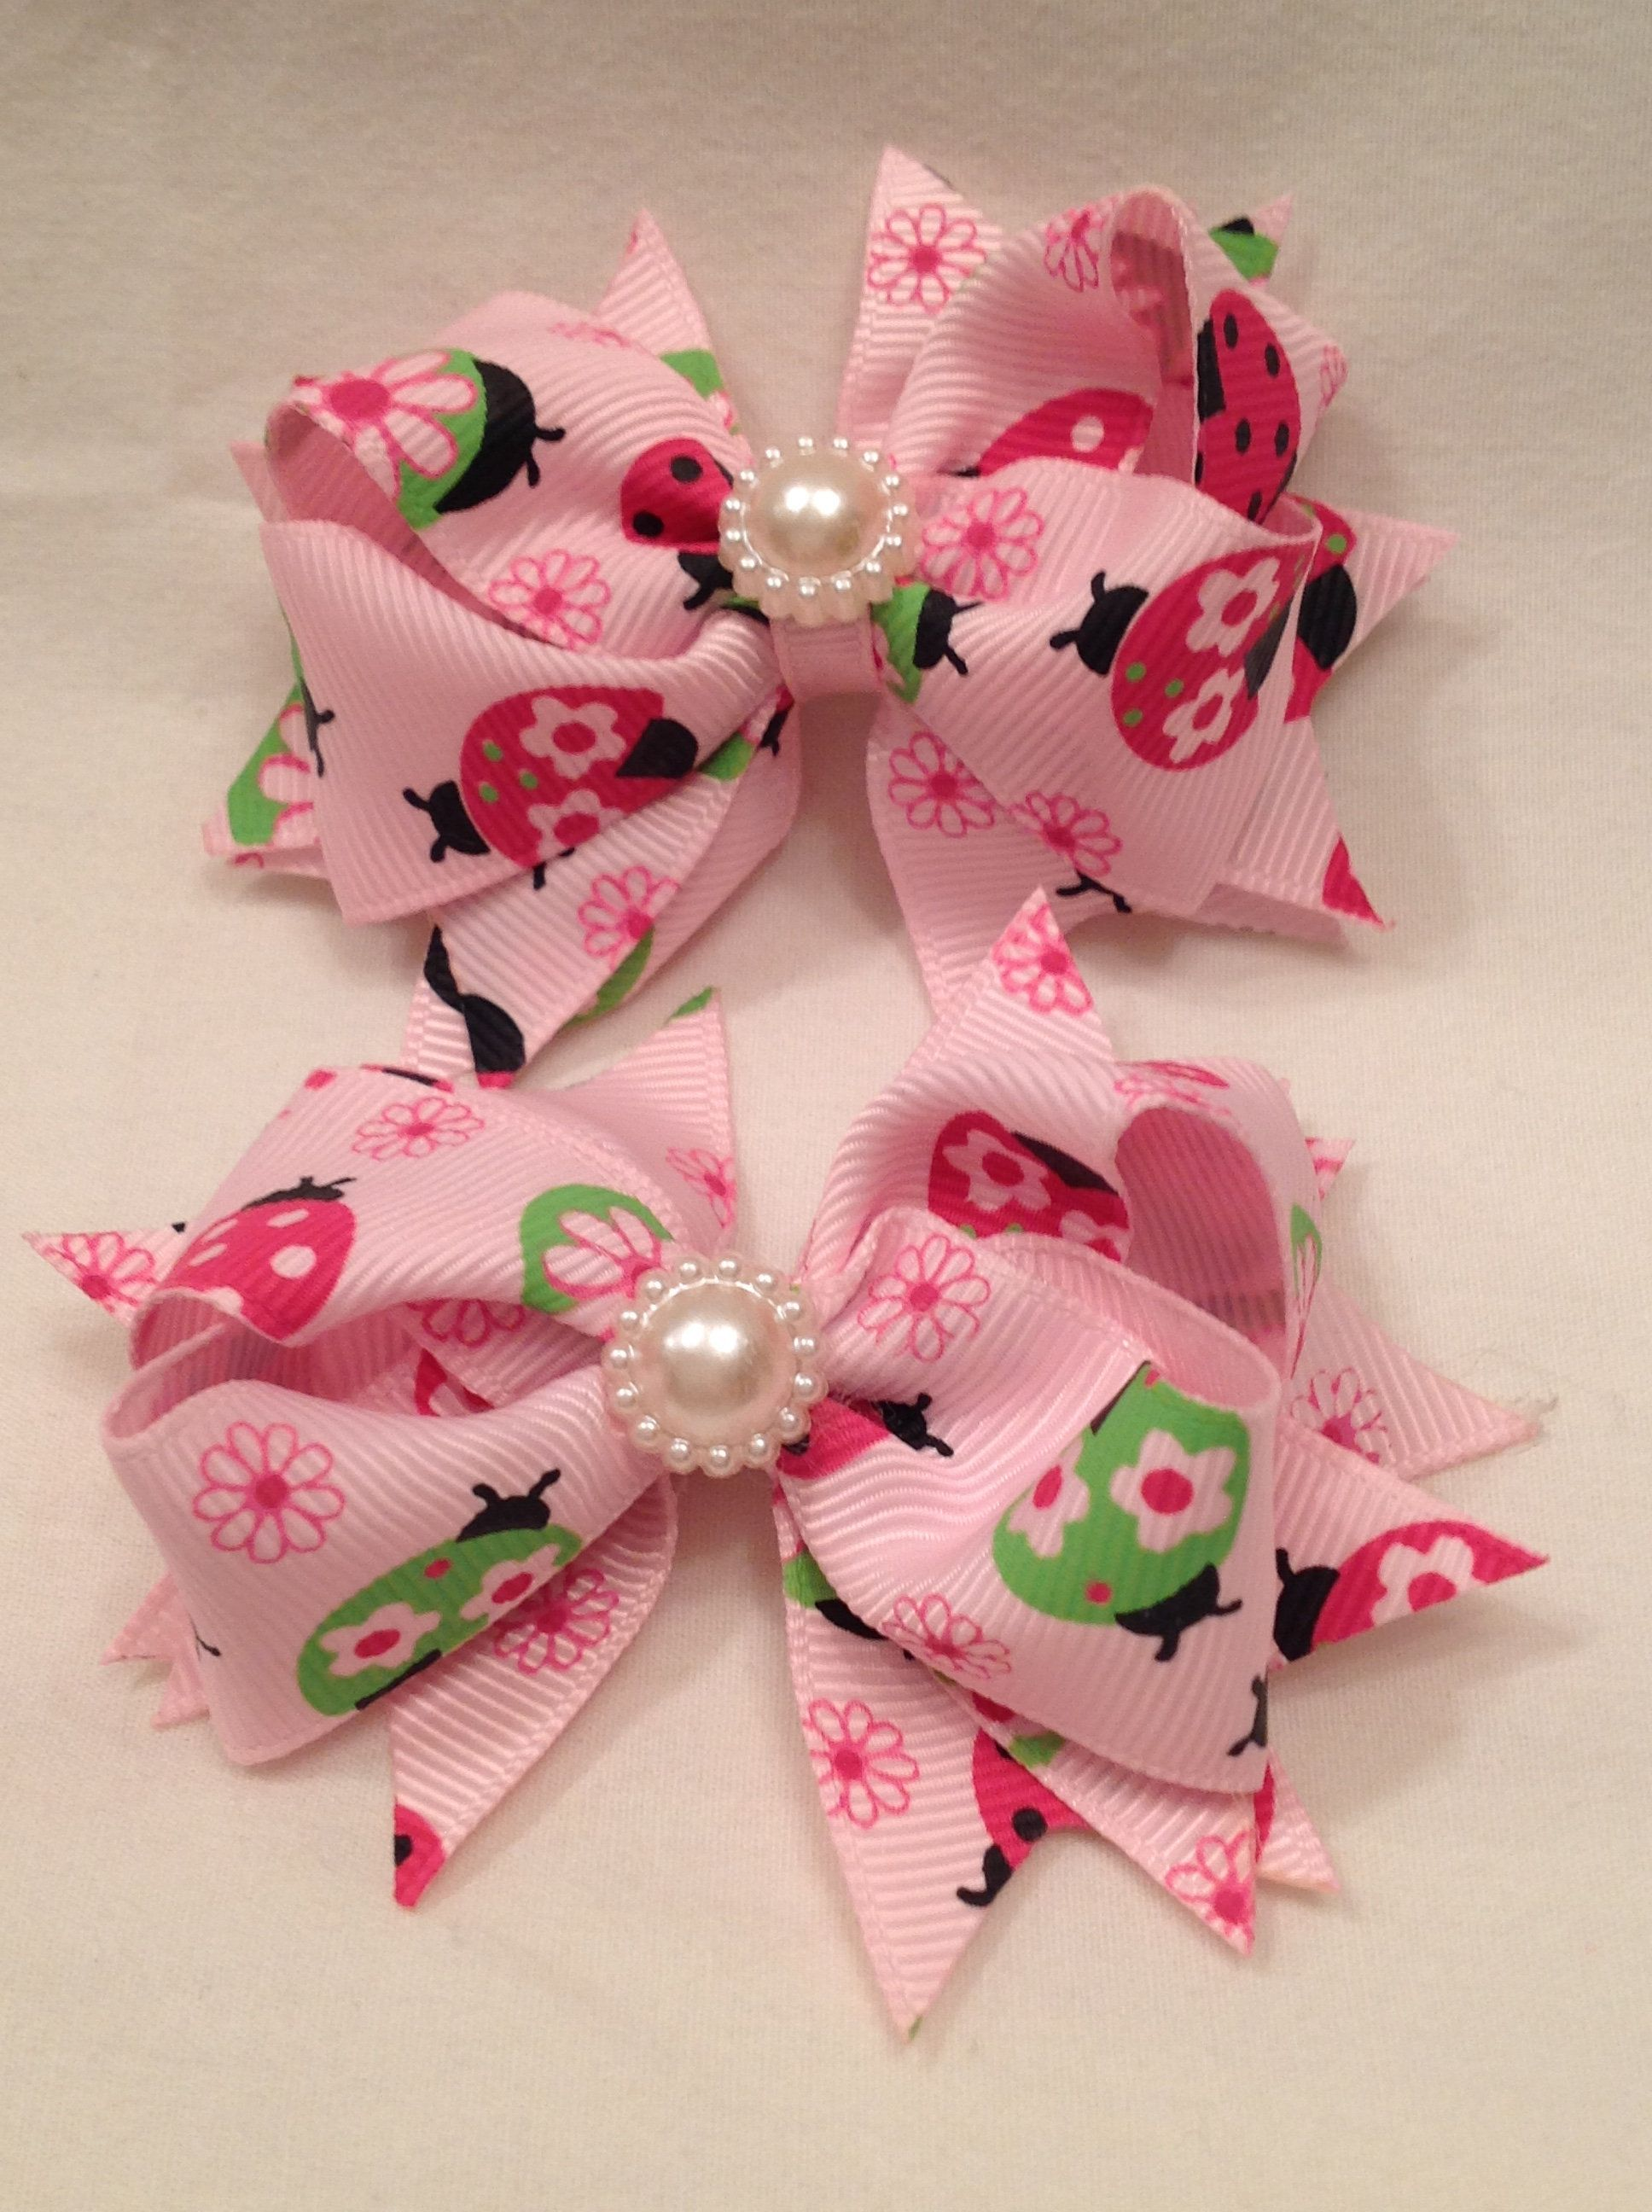 Hairbows for babies boutique bows hair accessories white glitter hair bows hairbow clips handmade bows hairbows hairbows for girls